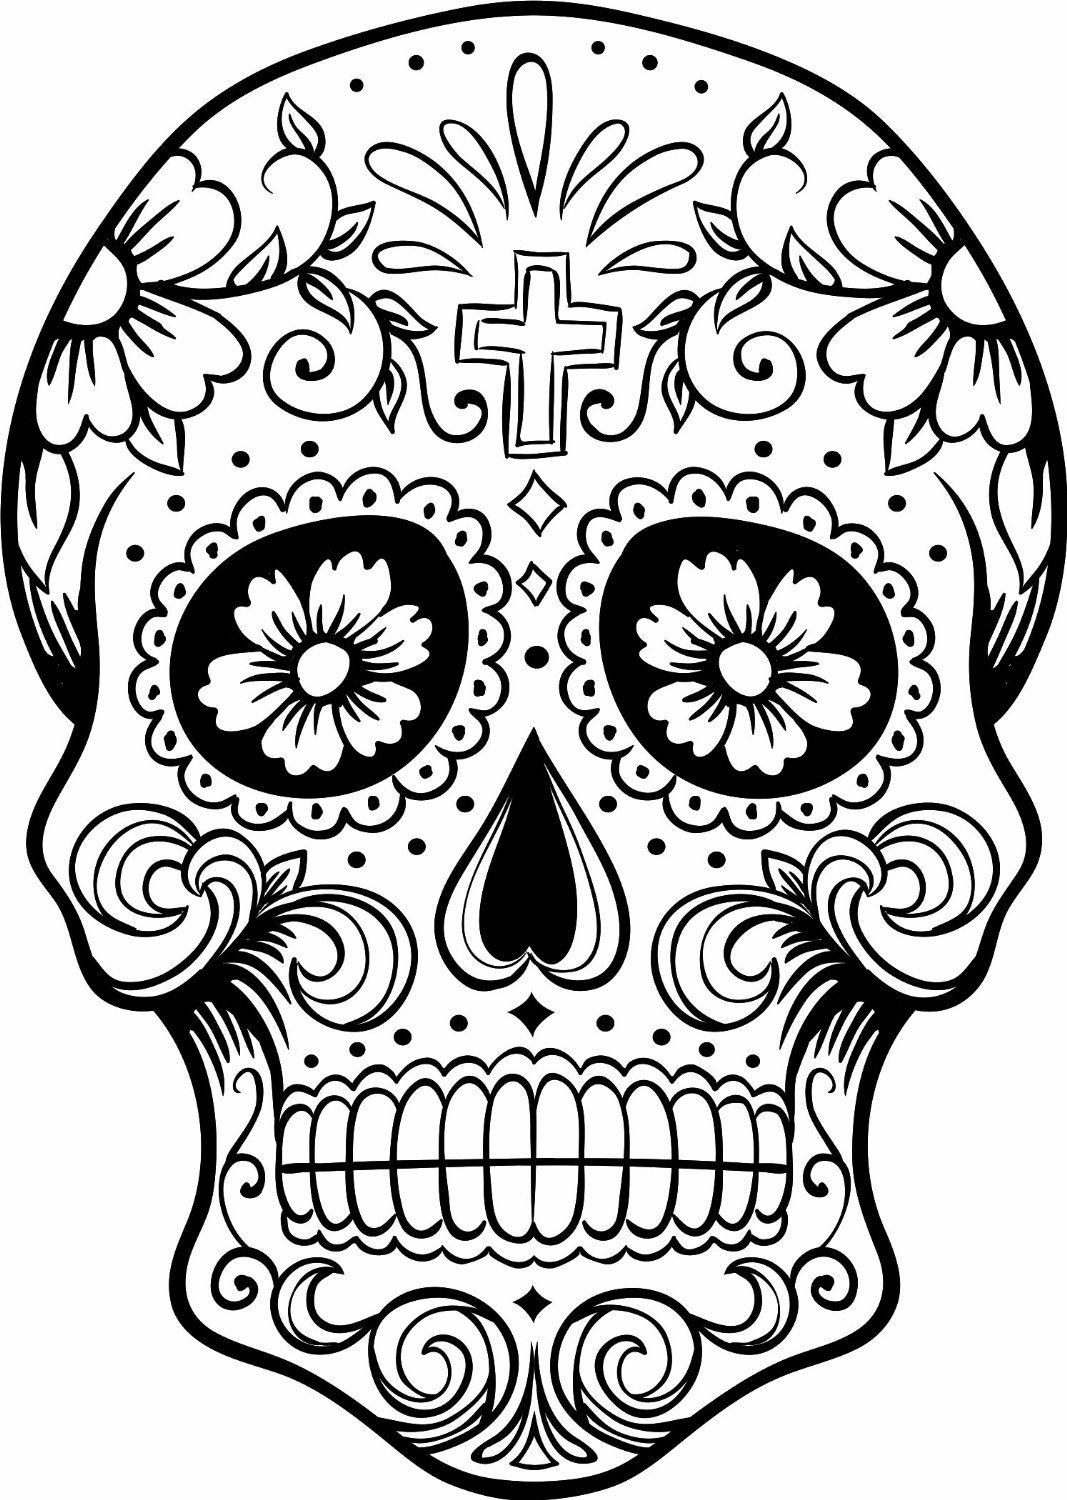 Sugar Skull Skull Coloring Pages Skull Sugar Skull Tattoos